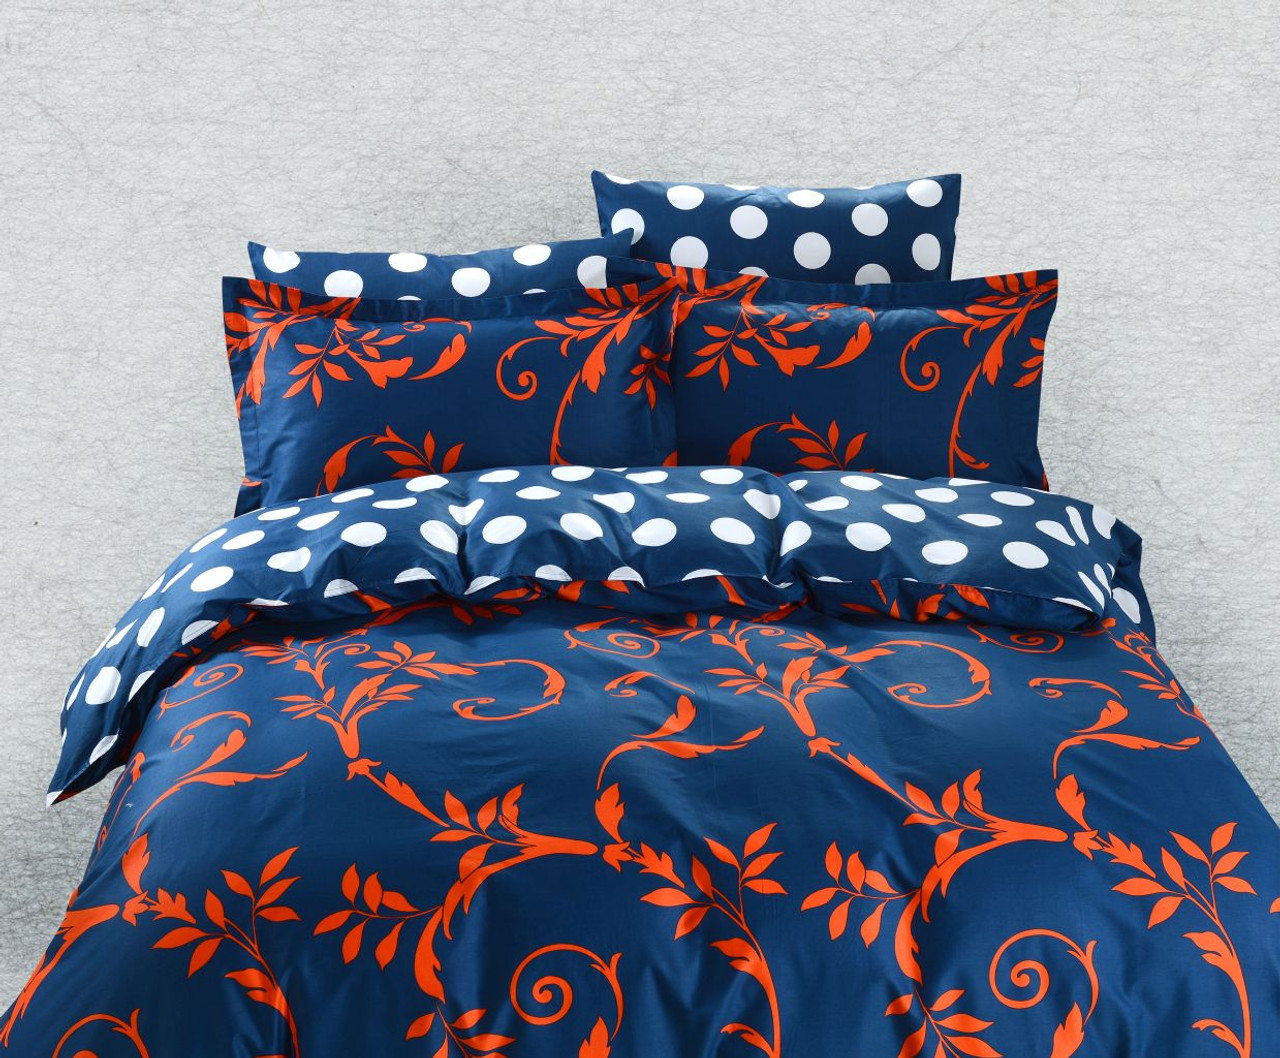 DM624Q  Crete Luxury Bedding Set